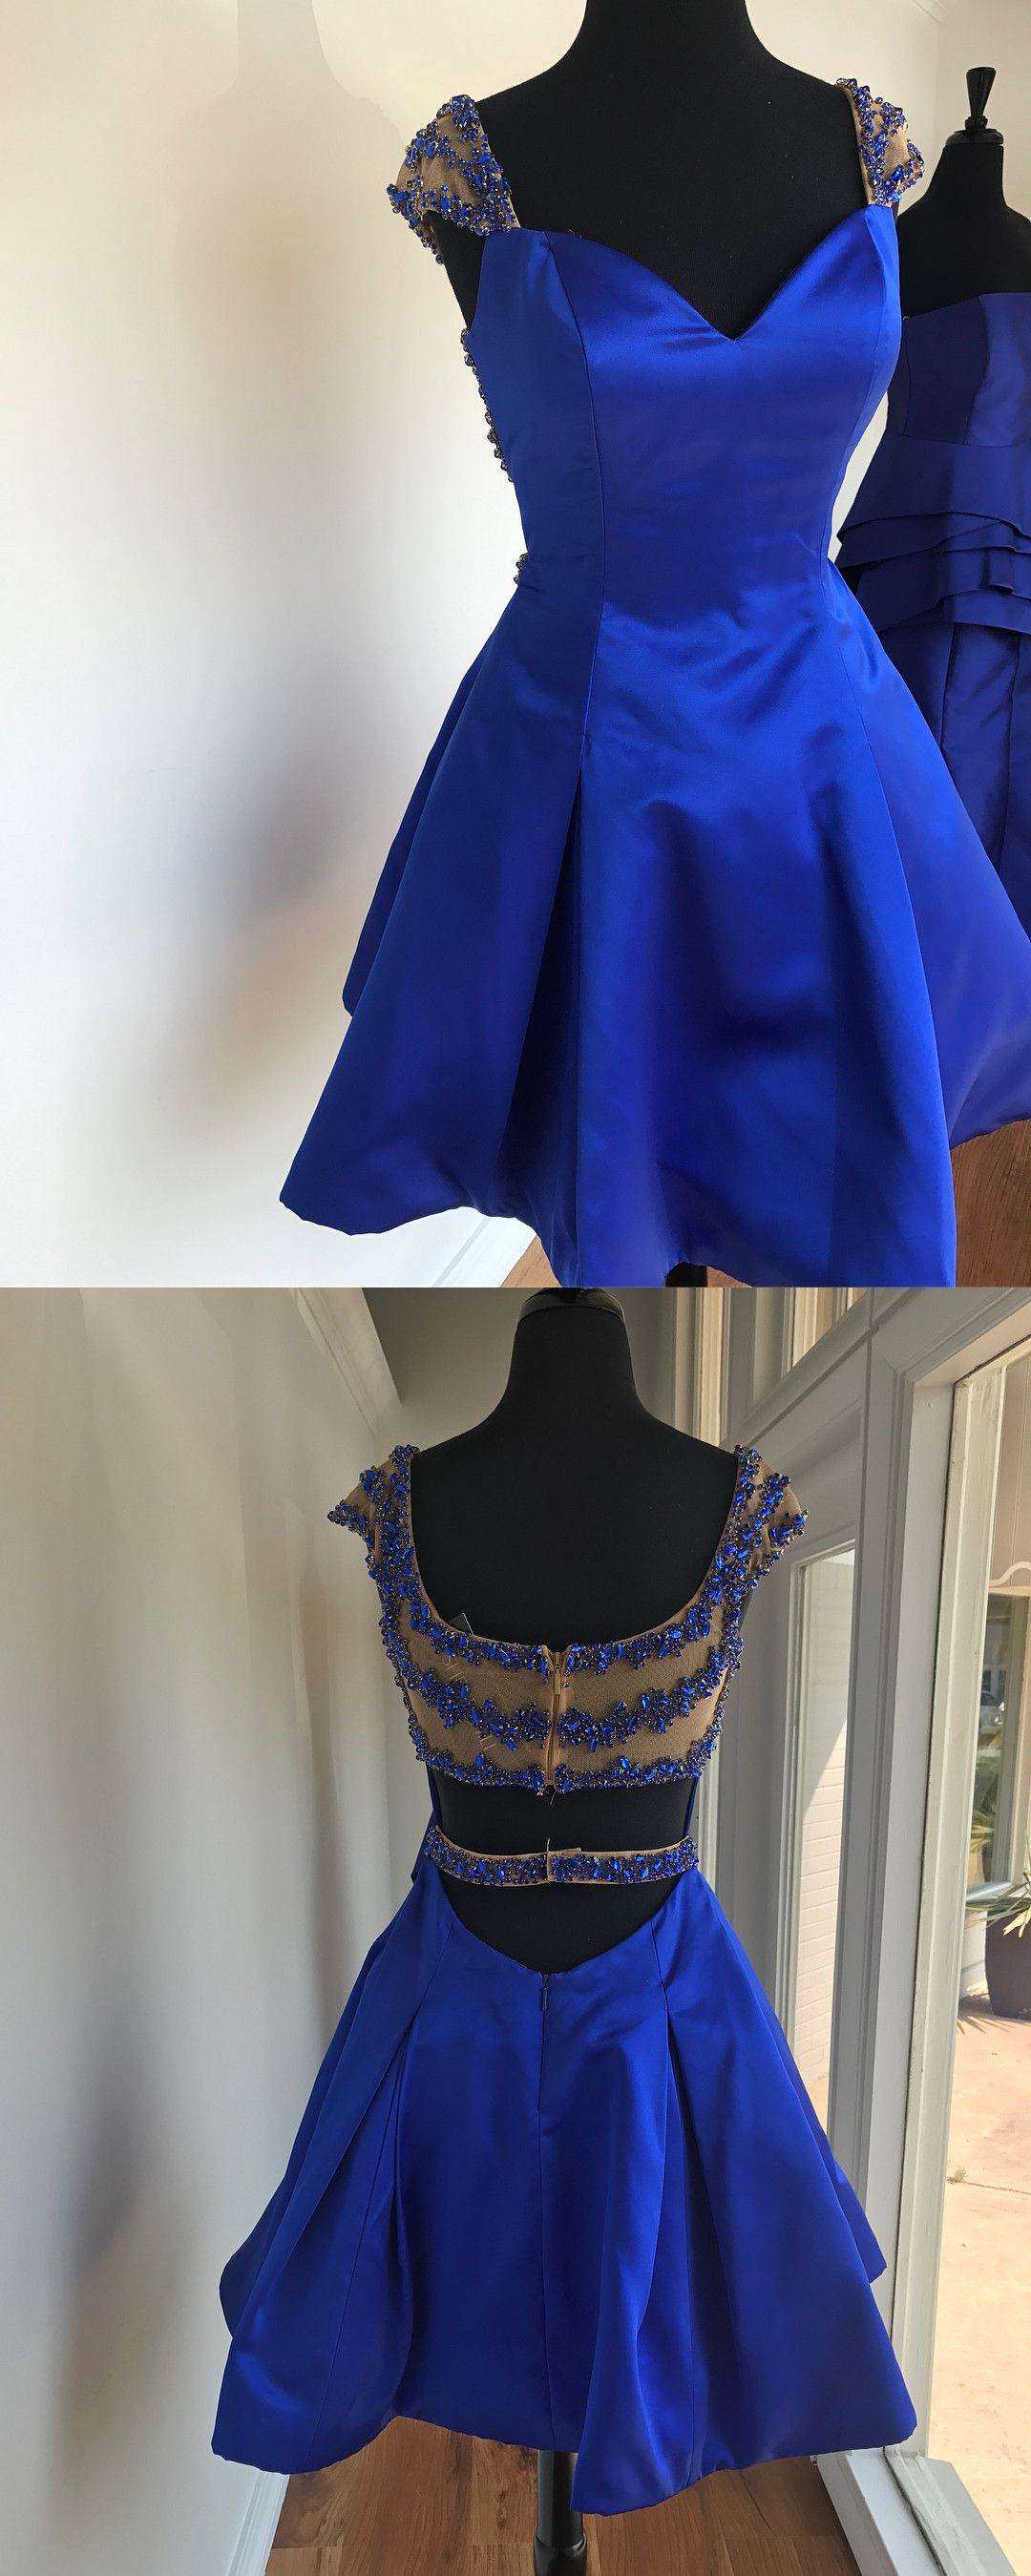 Cute short royal blue homecoming dress with beads k graduation